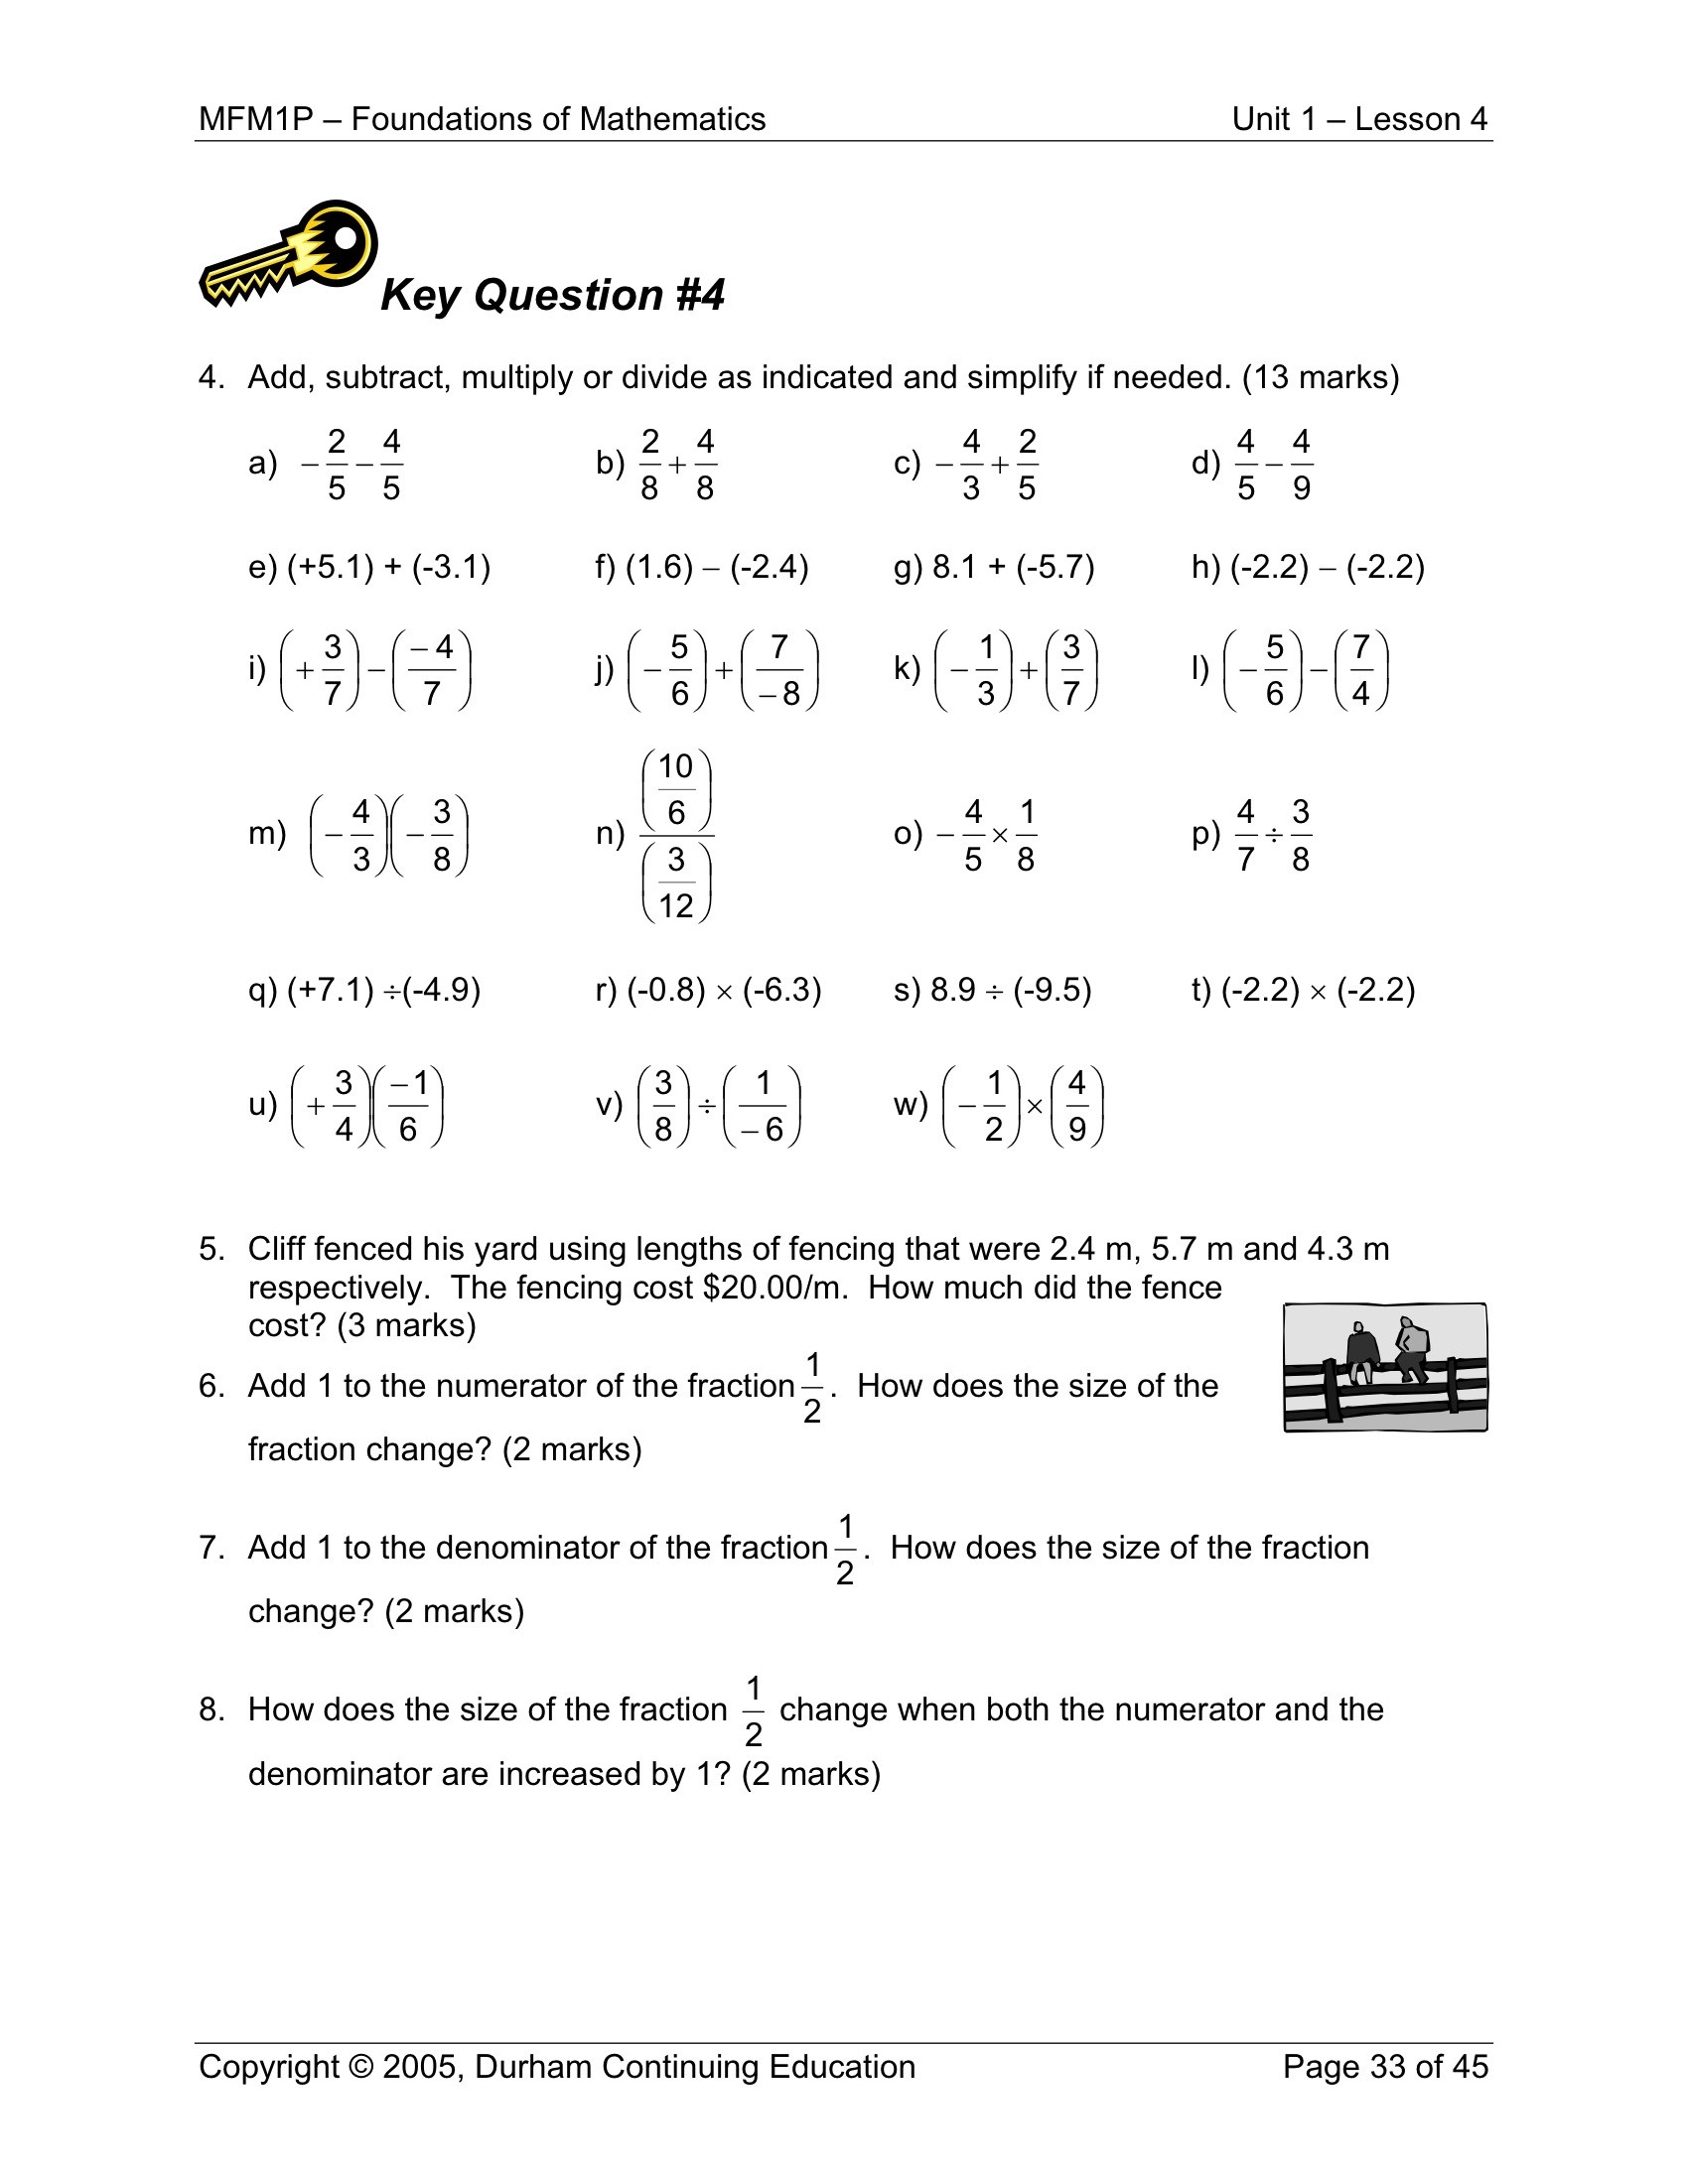 Converting Rational Numbers Worksheet